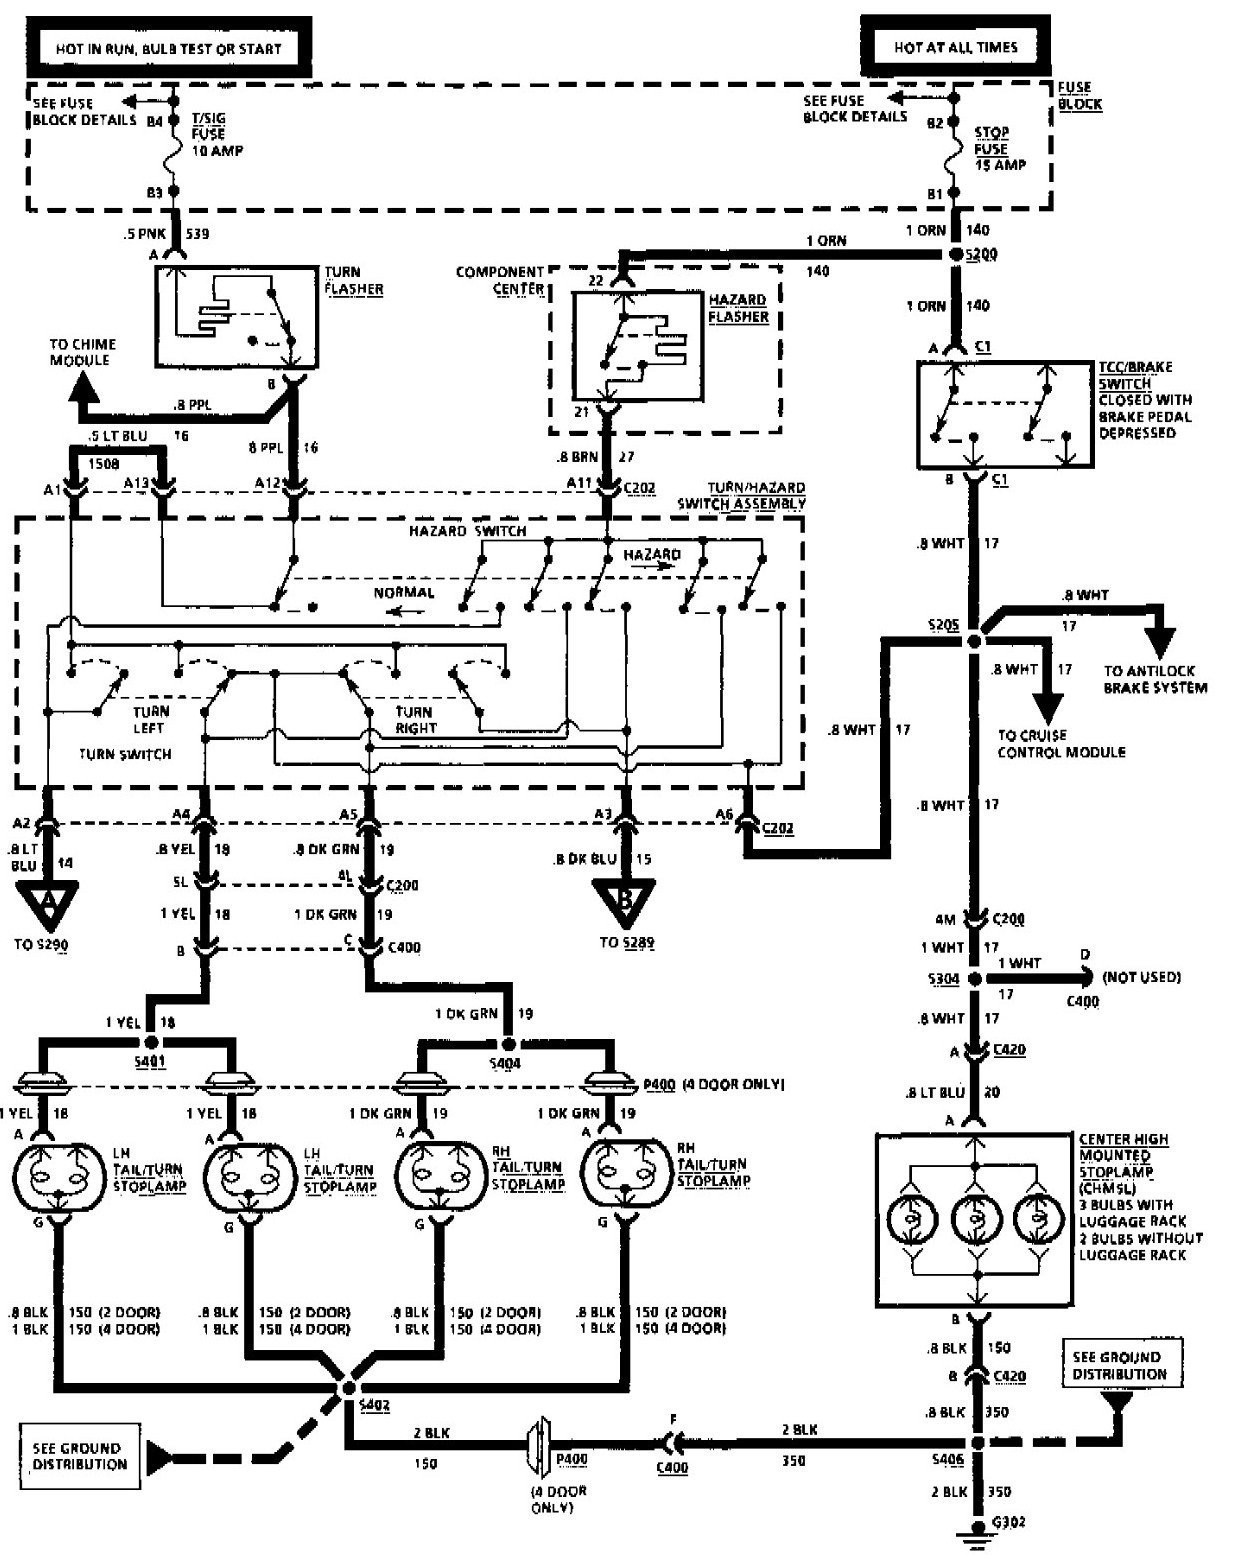 Weg Electric Motor Wiring Diagram Inspirational Weg 12 Lead Motor - 12 Lead Motor Wiring Diagram